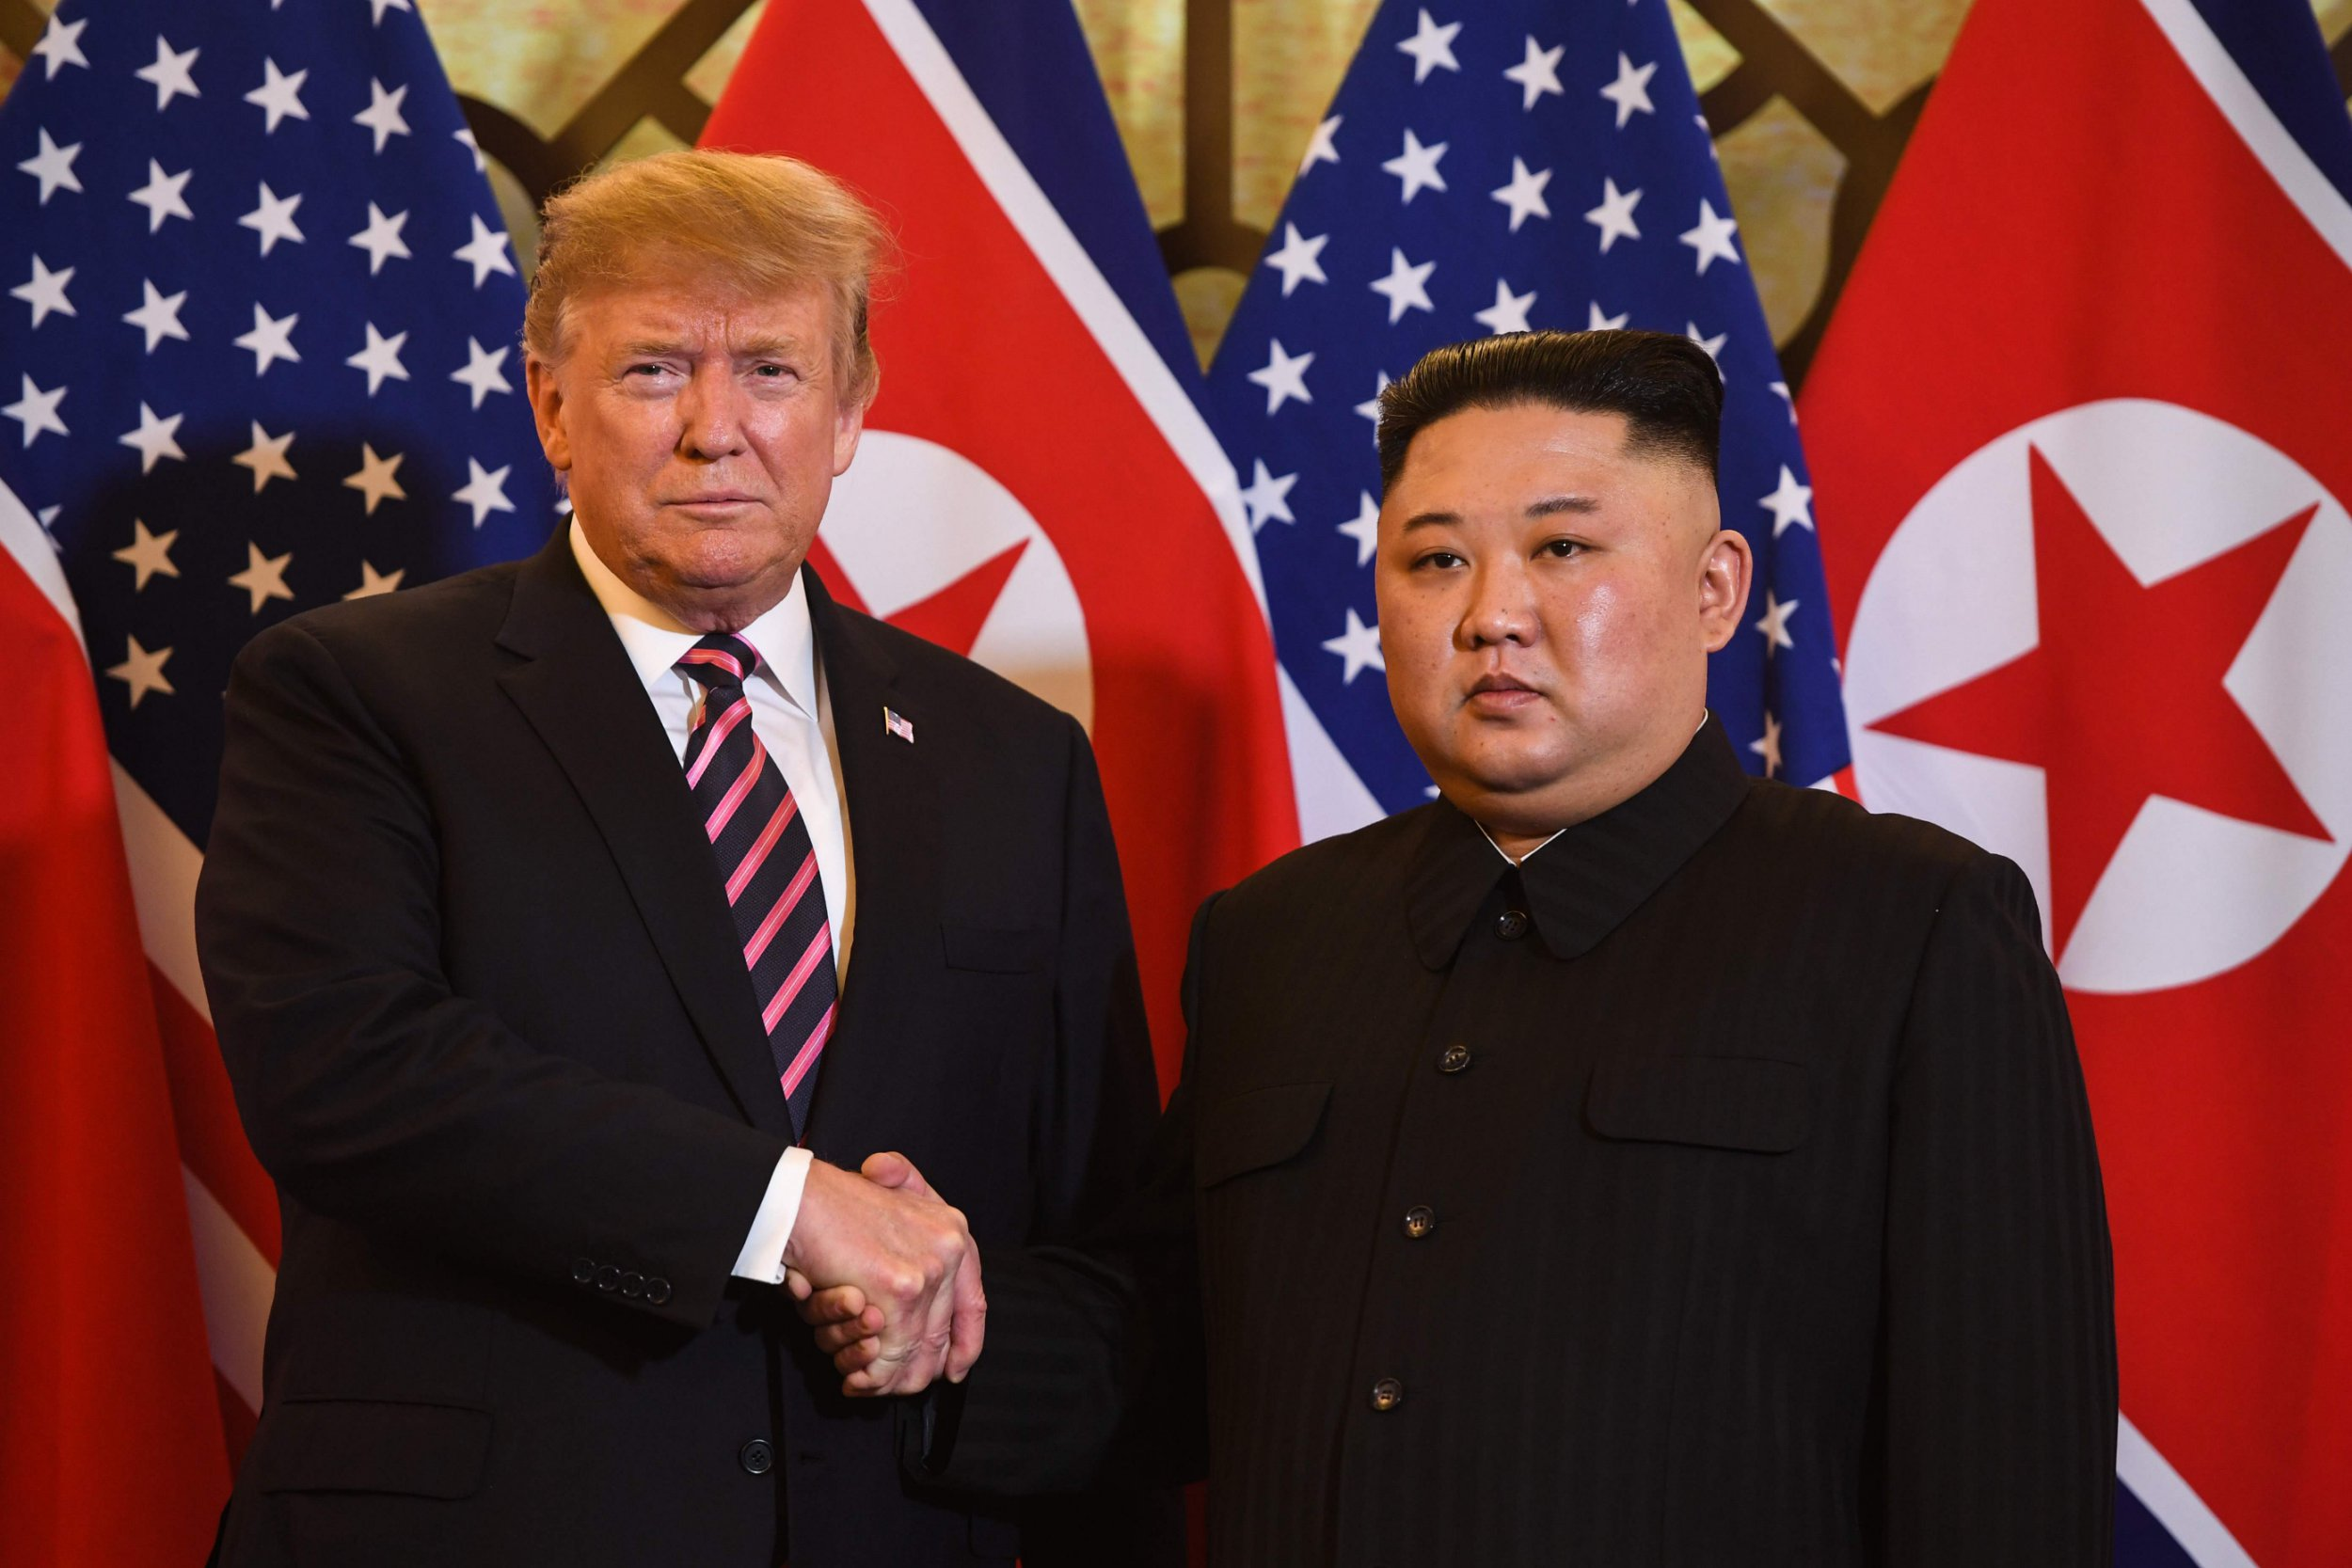 Donald Trump and Kim Jong-un meet face-to-face for second time